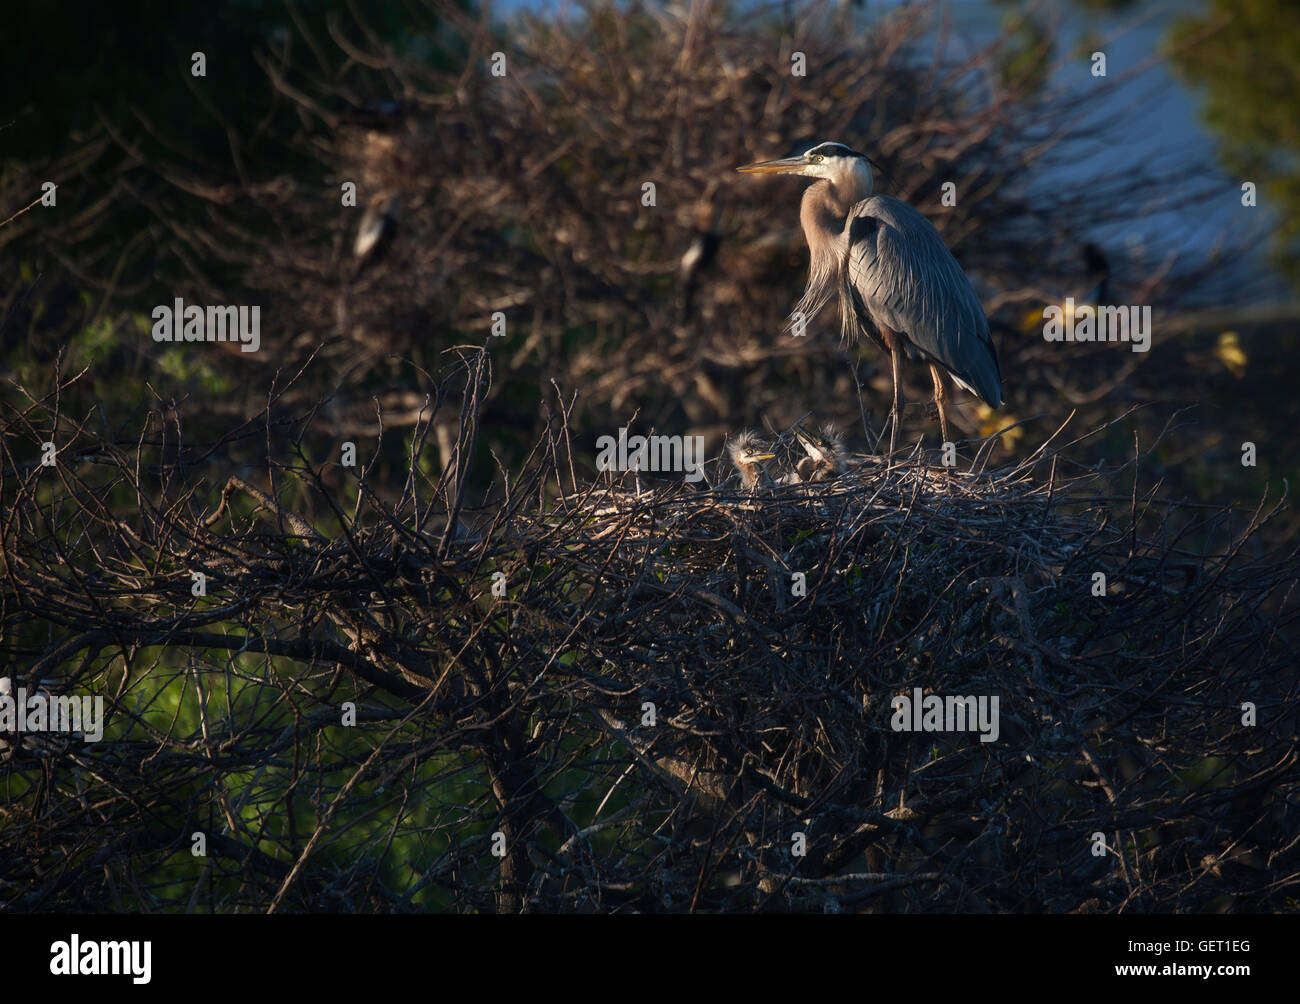 Great Blue Heron parent stands by its chicks after feeding - a tender yet moody scene spotlighted by the setting - Stock Image